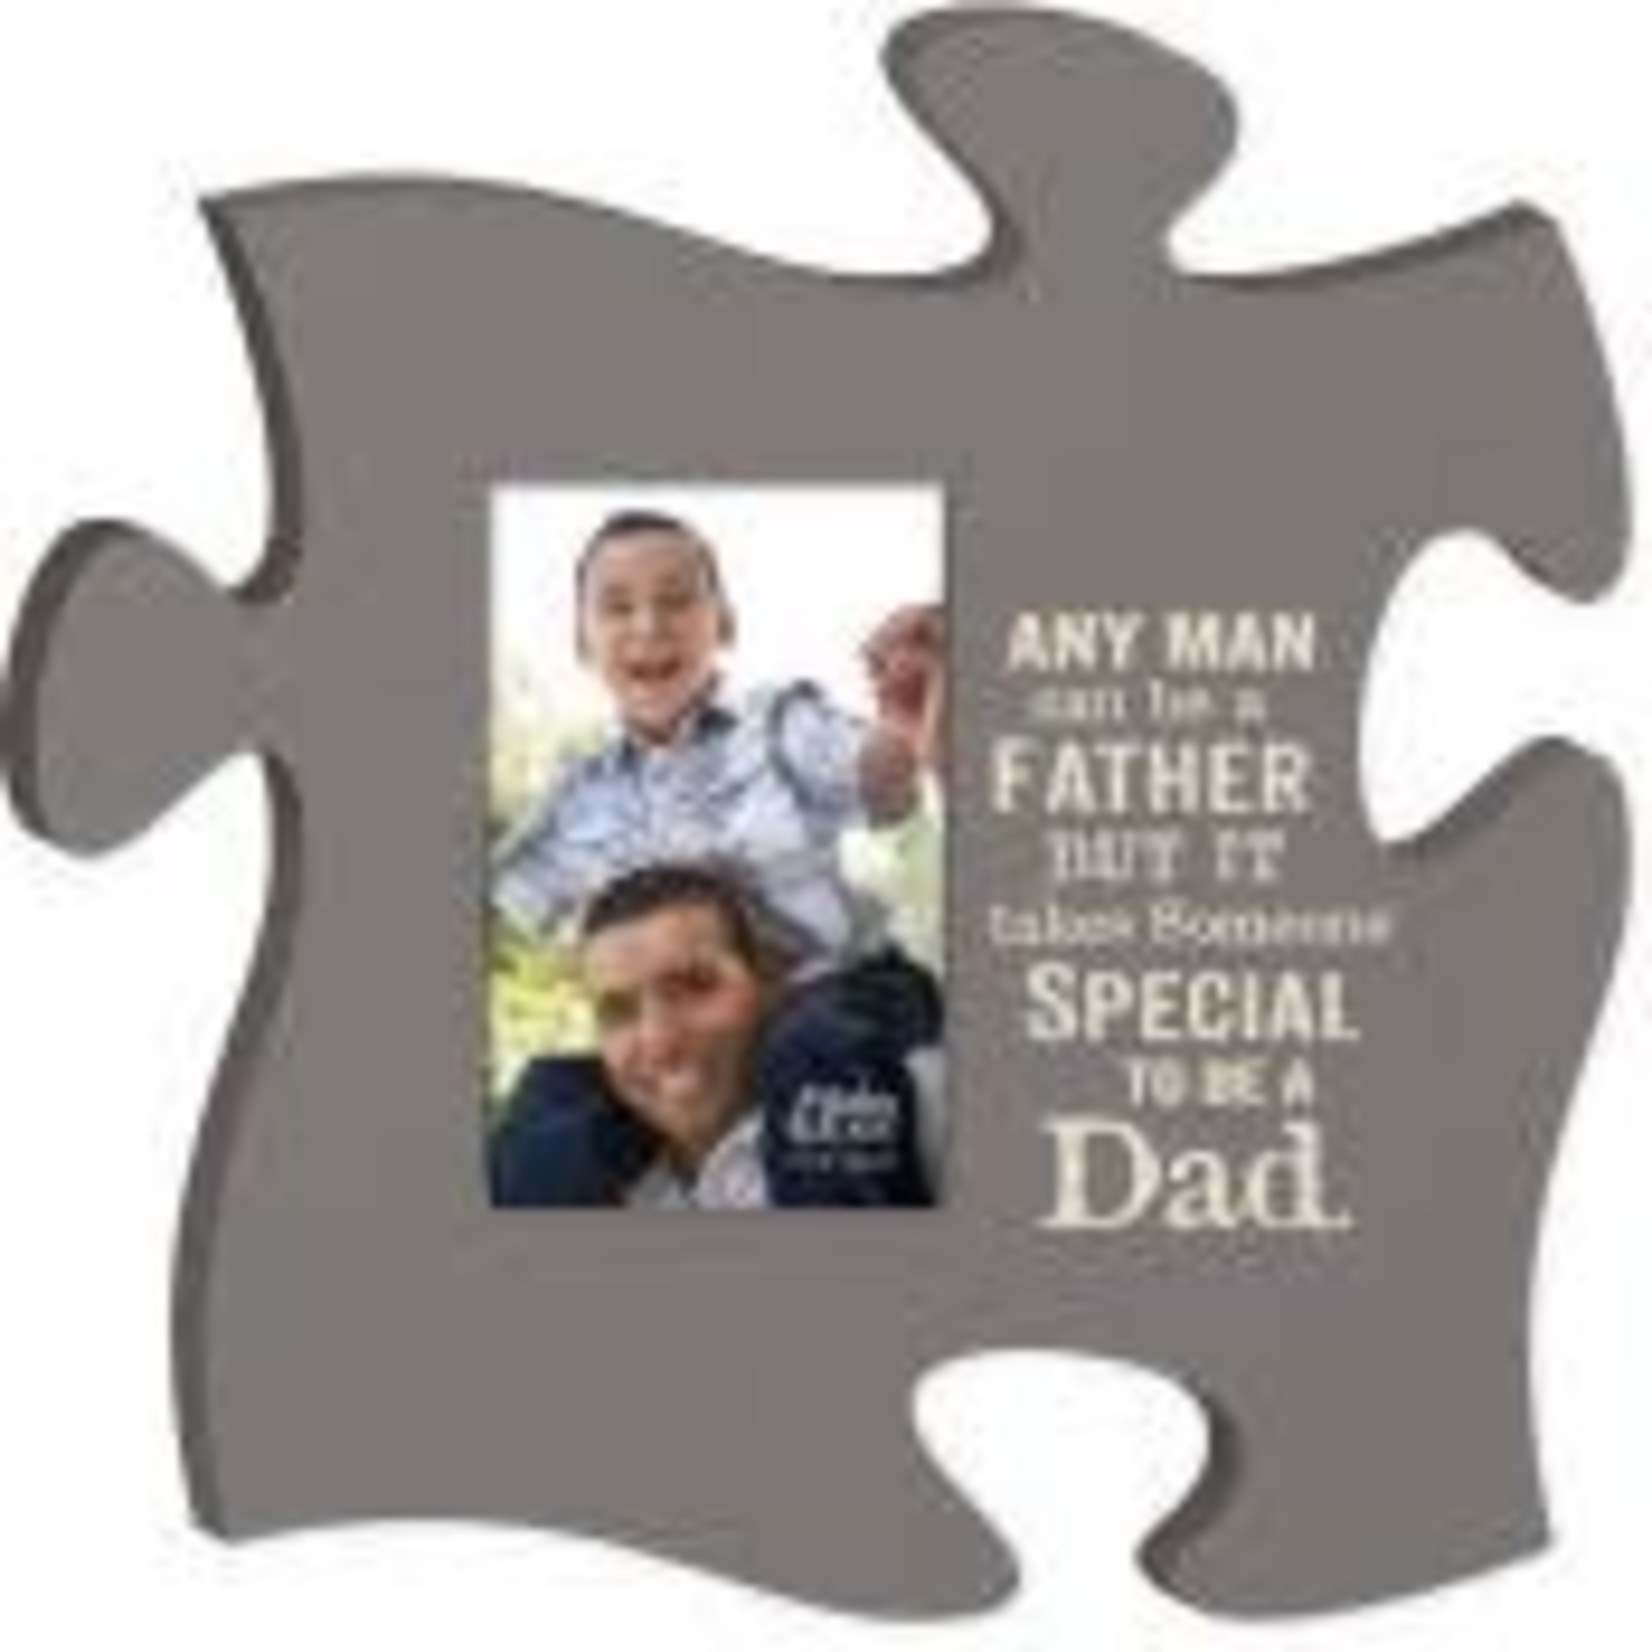 Puzzle - Special to be a Dad